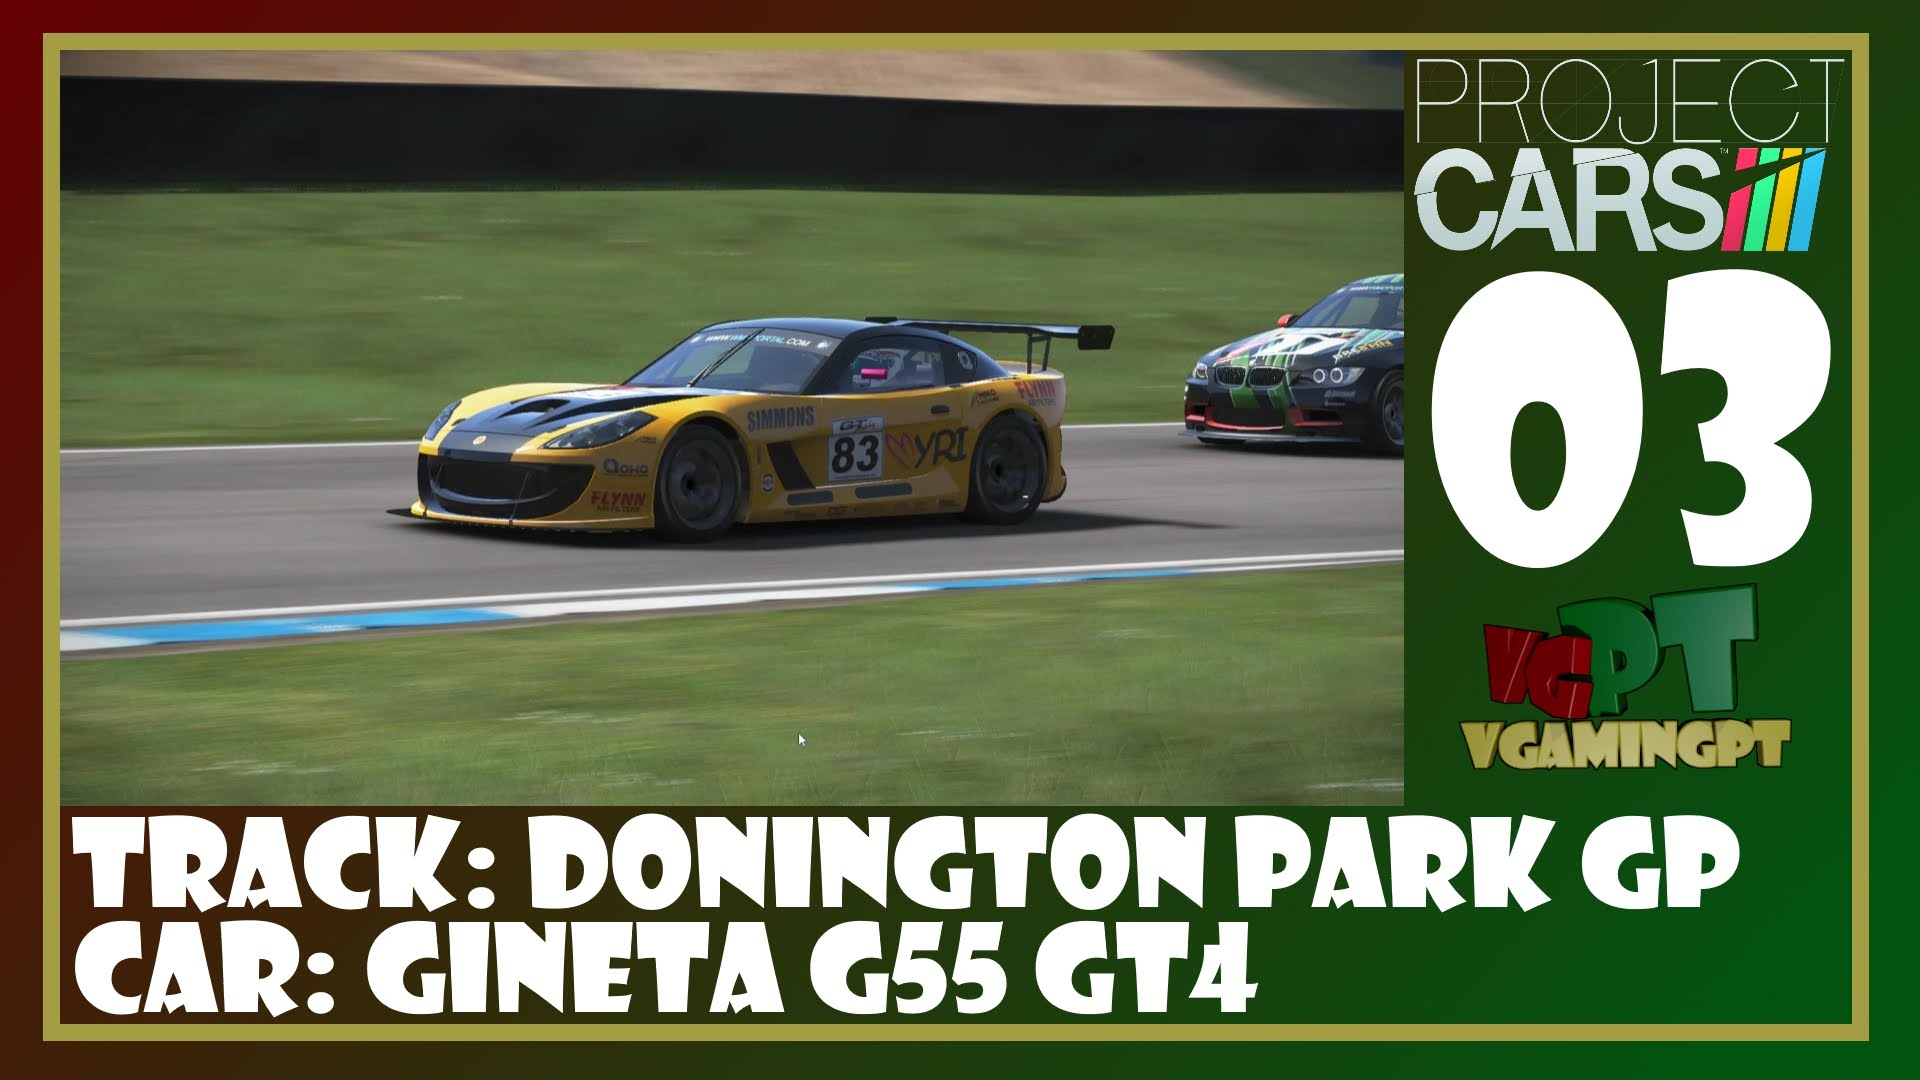 Project Cars - Donington Park GP - Ginetta G55 GT4